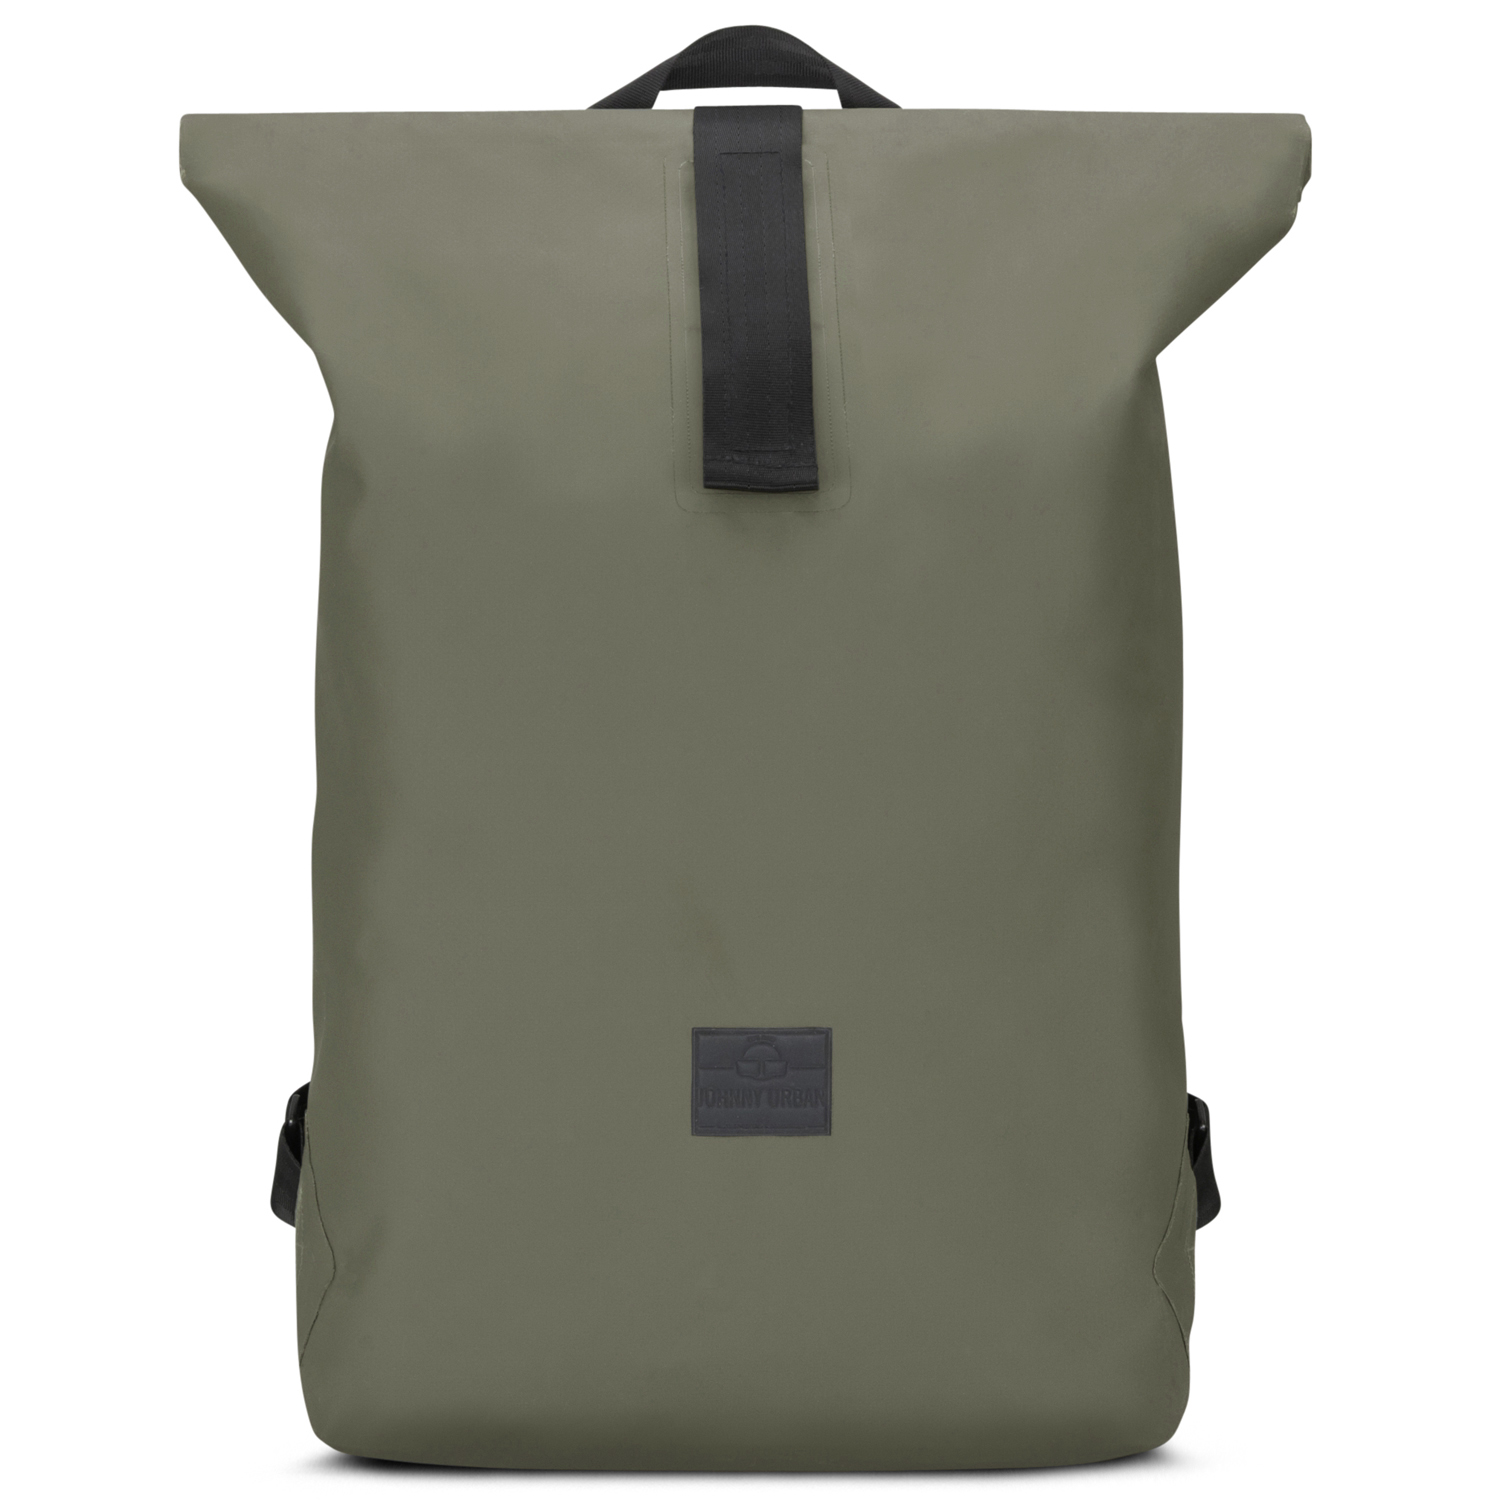 Roll Top Rucksack - Alec - olive-grün - Johnny Urban